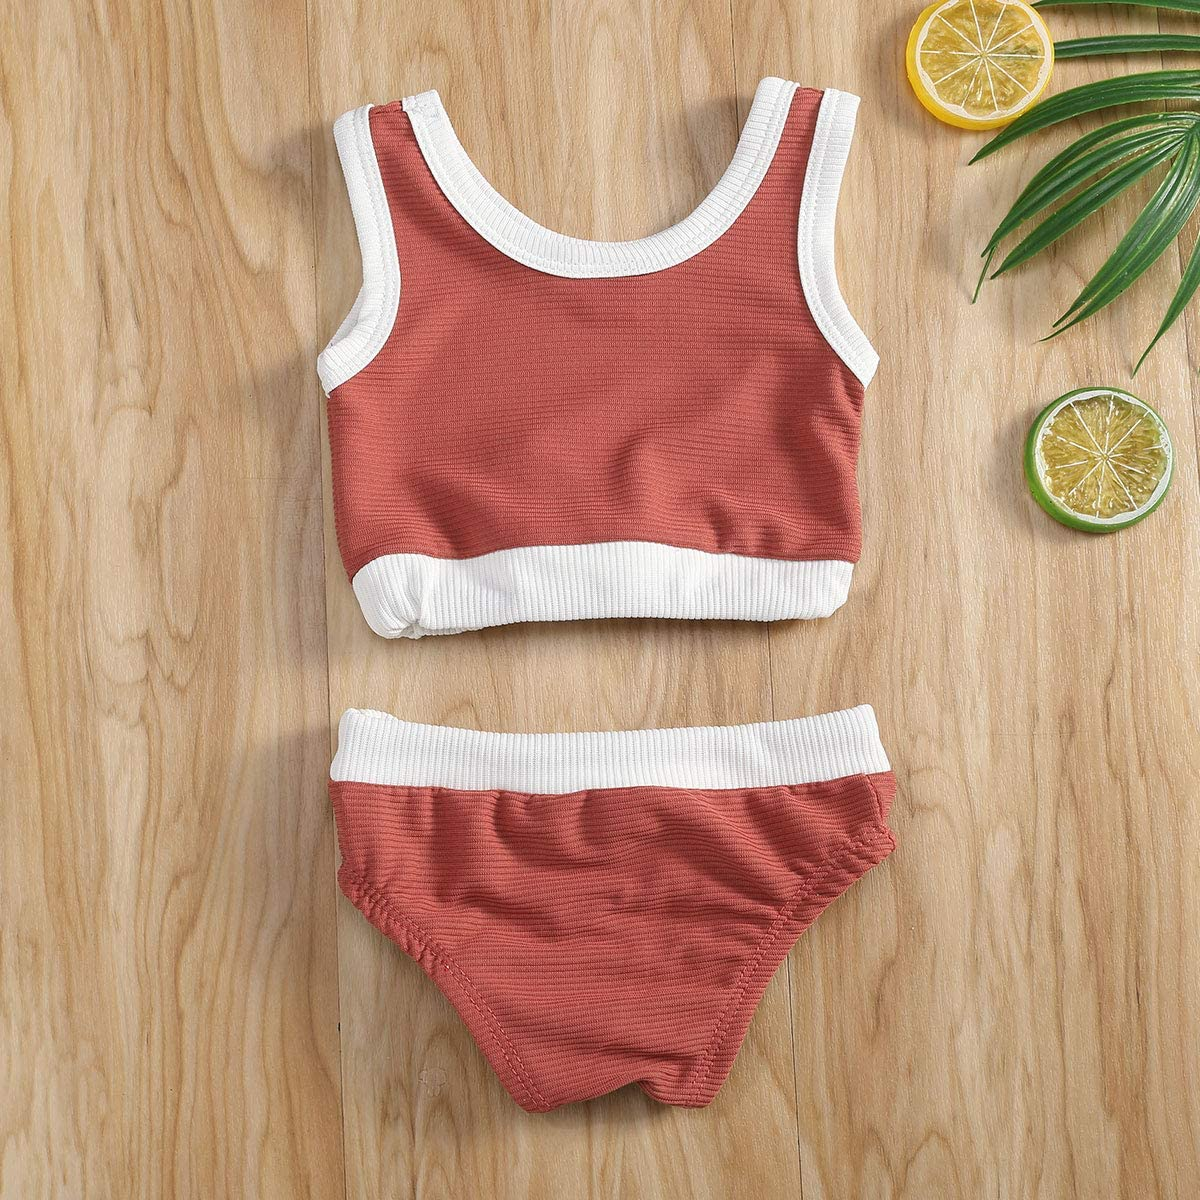 WALLARENEAR Toddler Baby Girl 2Pcs Swimsuit Striped Sleeveless Vest Top Briefs Baithing Suit Bikini Outfit